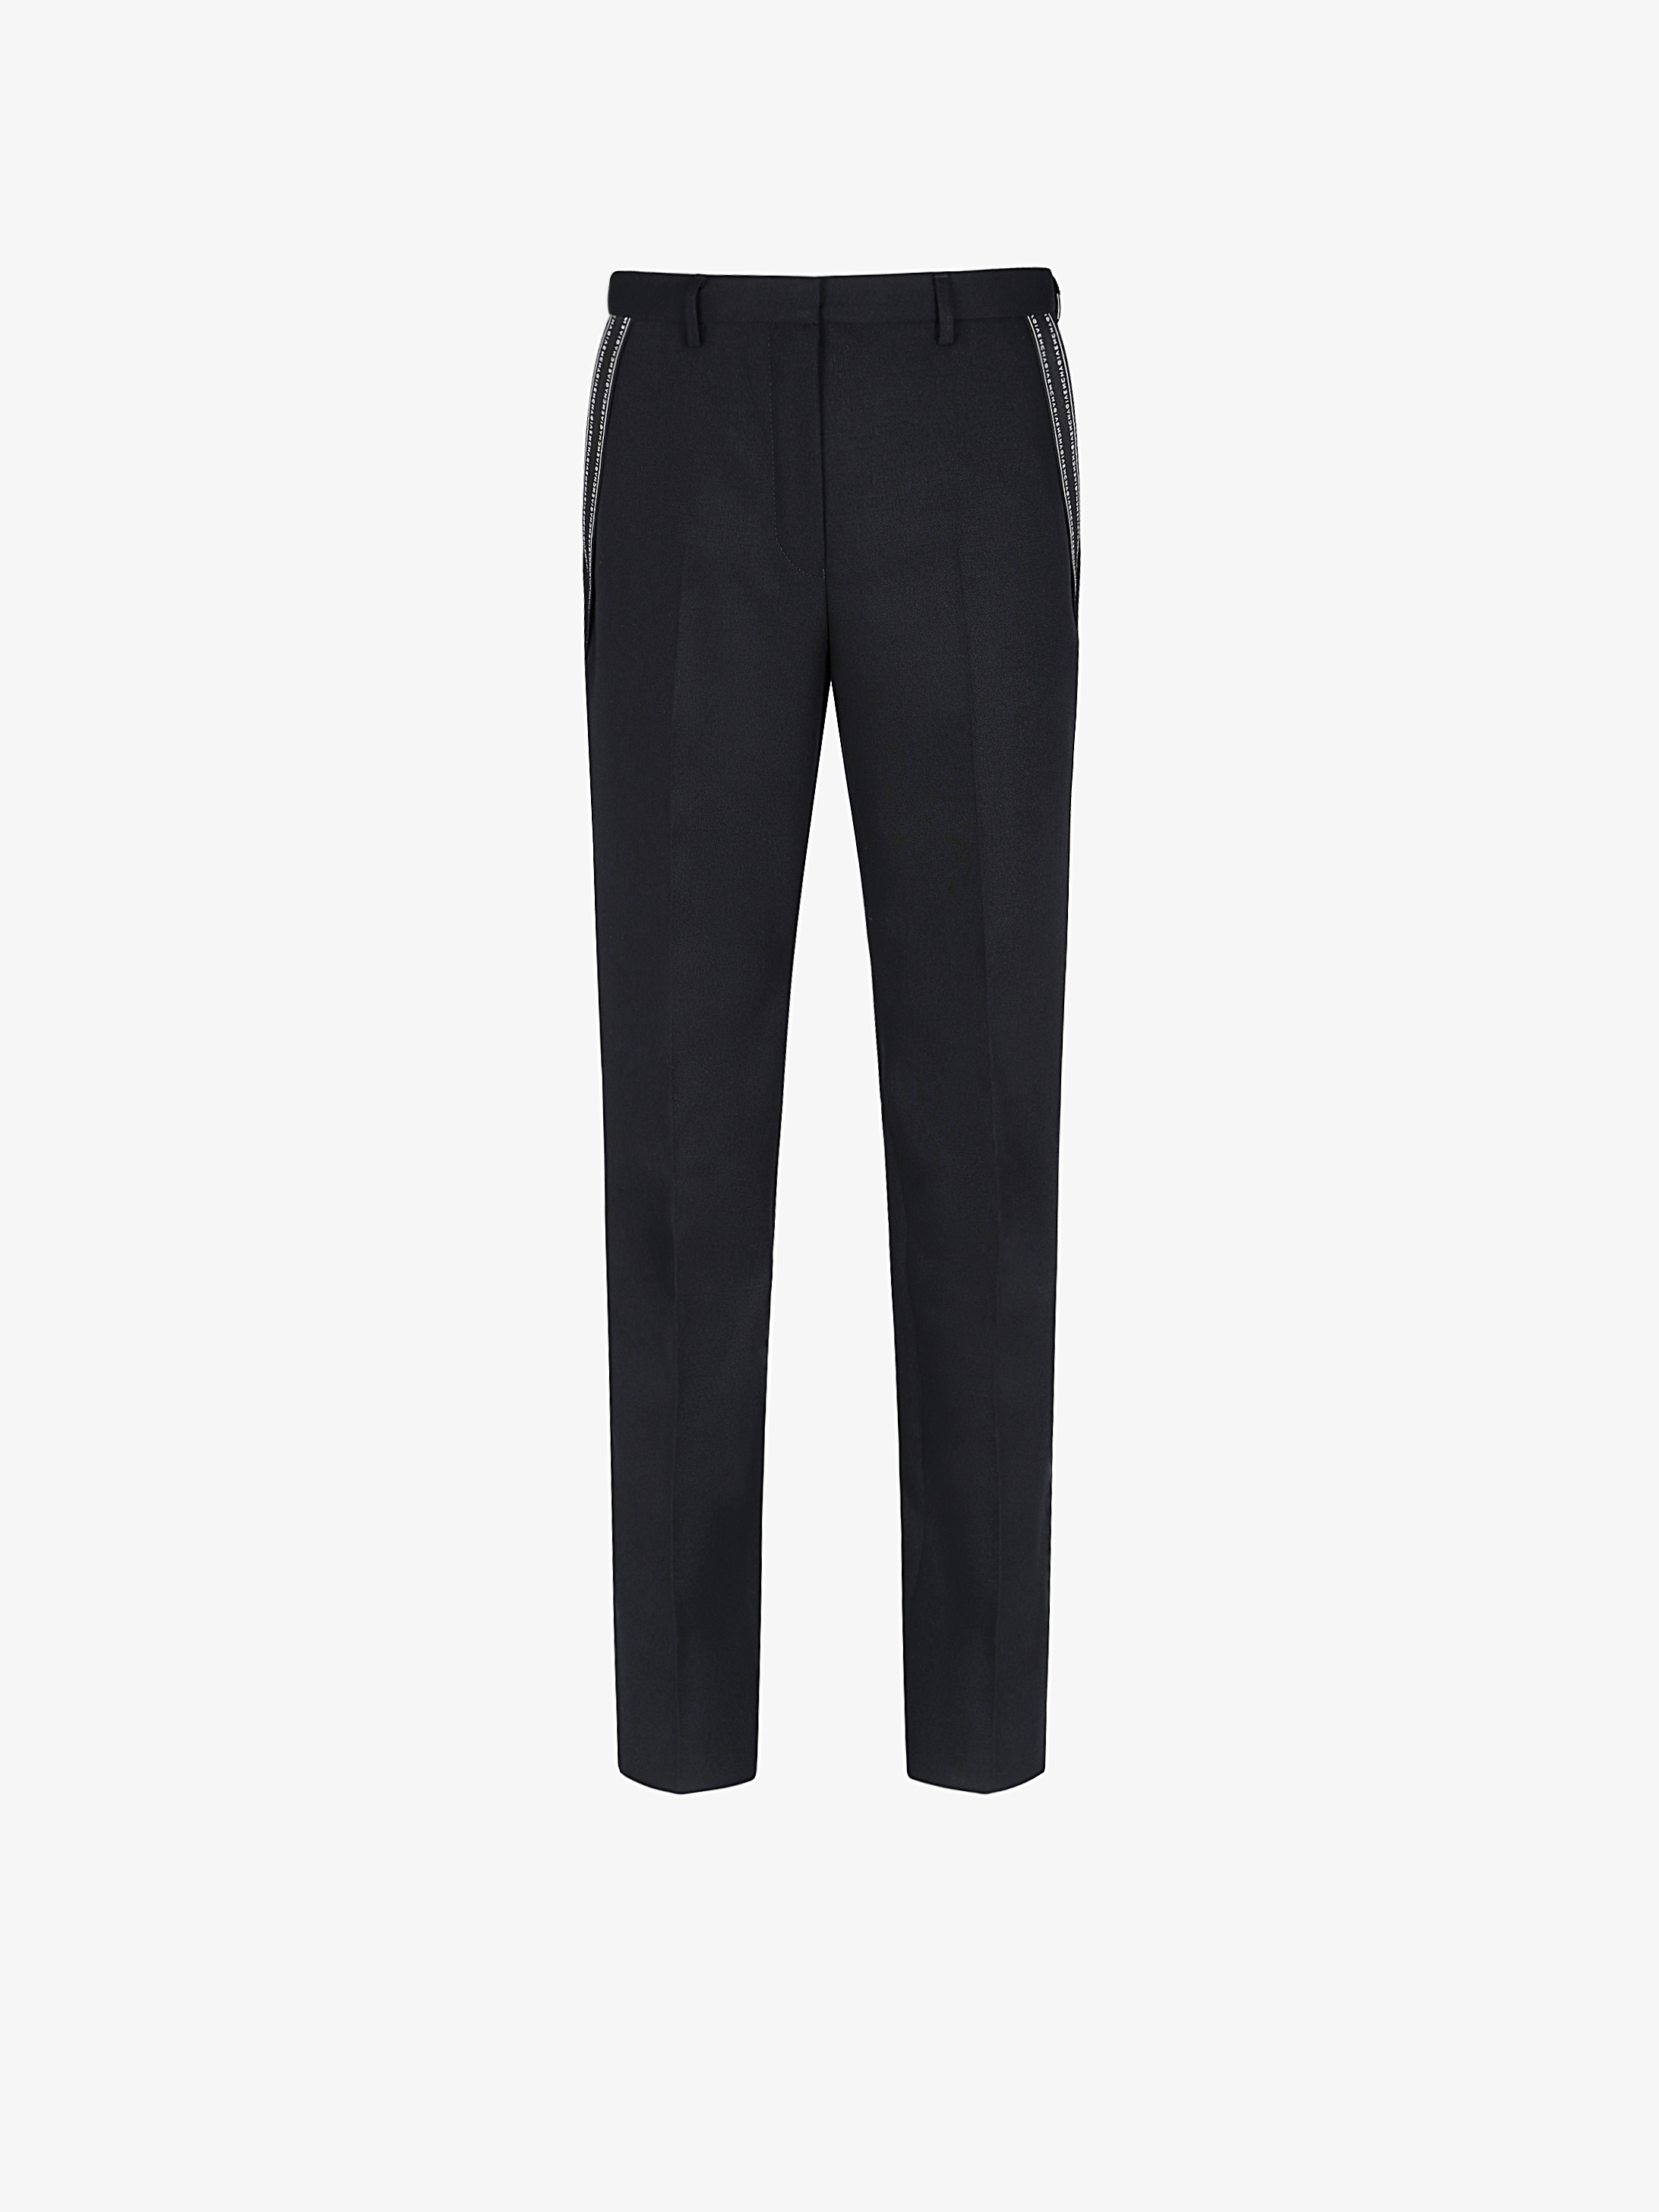 GIVENCHY bands pants in wool